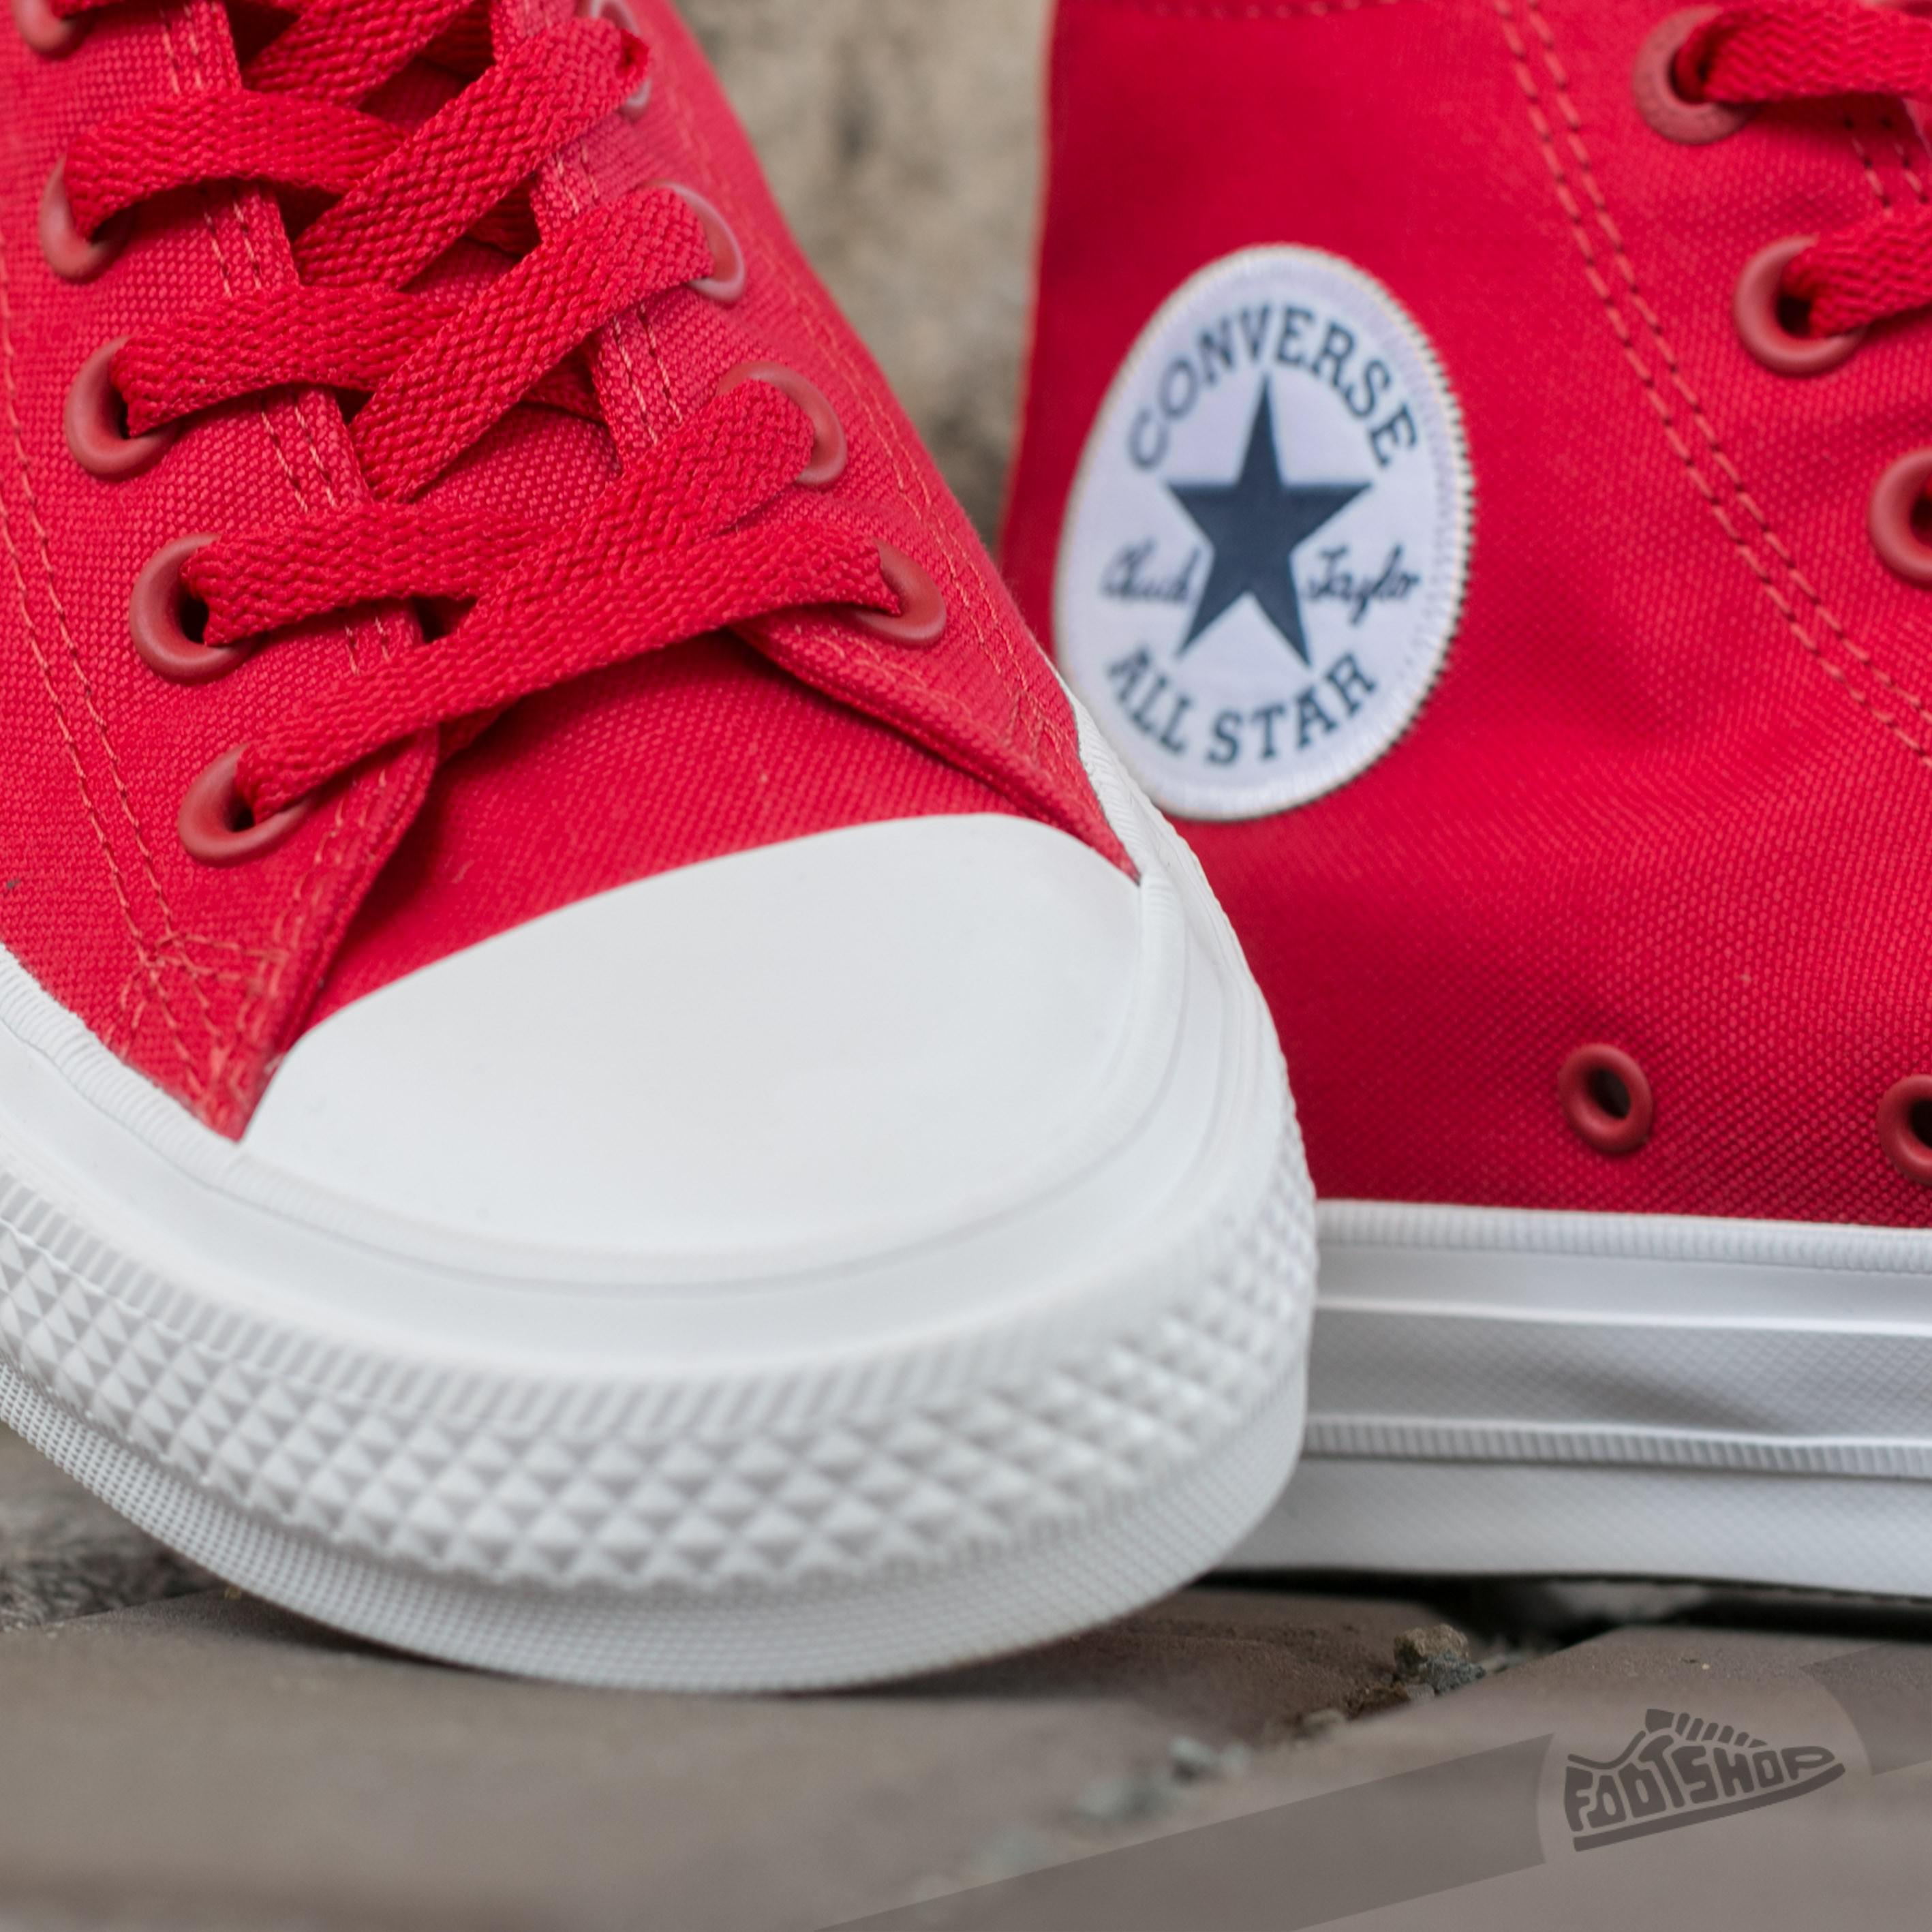 e7eee33a584 Lyst - Converse Ct Ii Salsa  Salsa Red  White in Red for Men